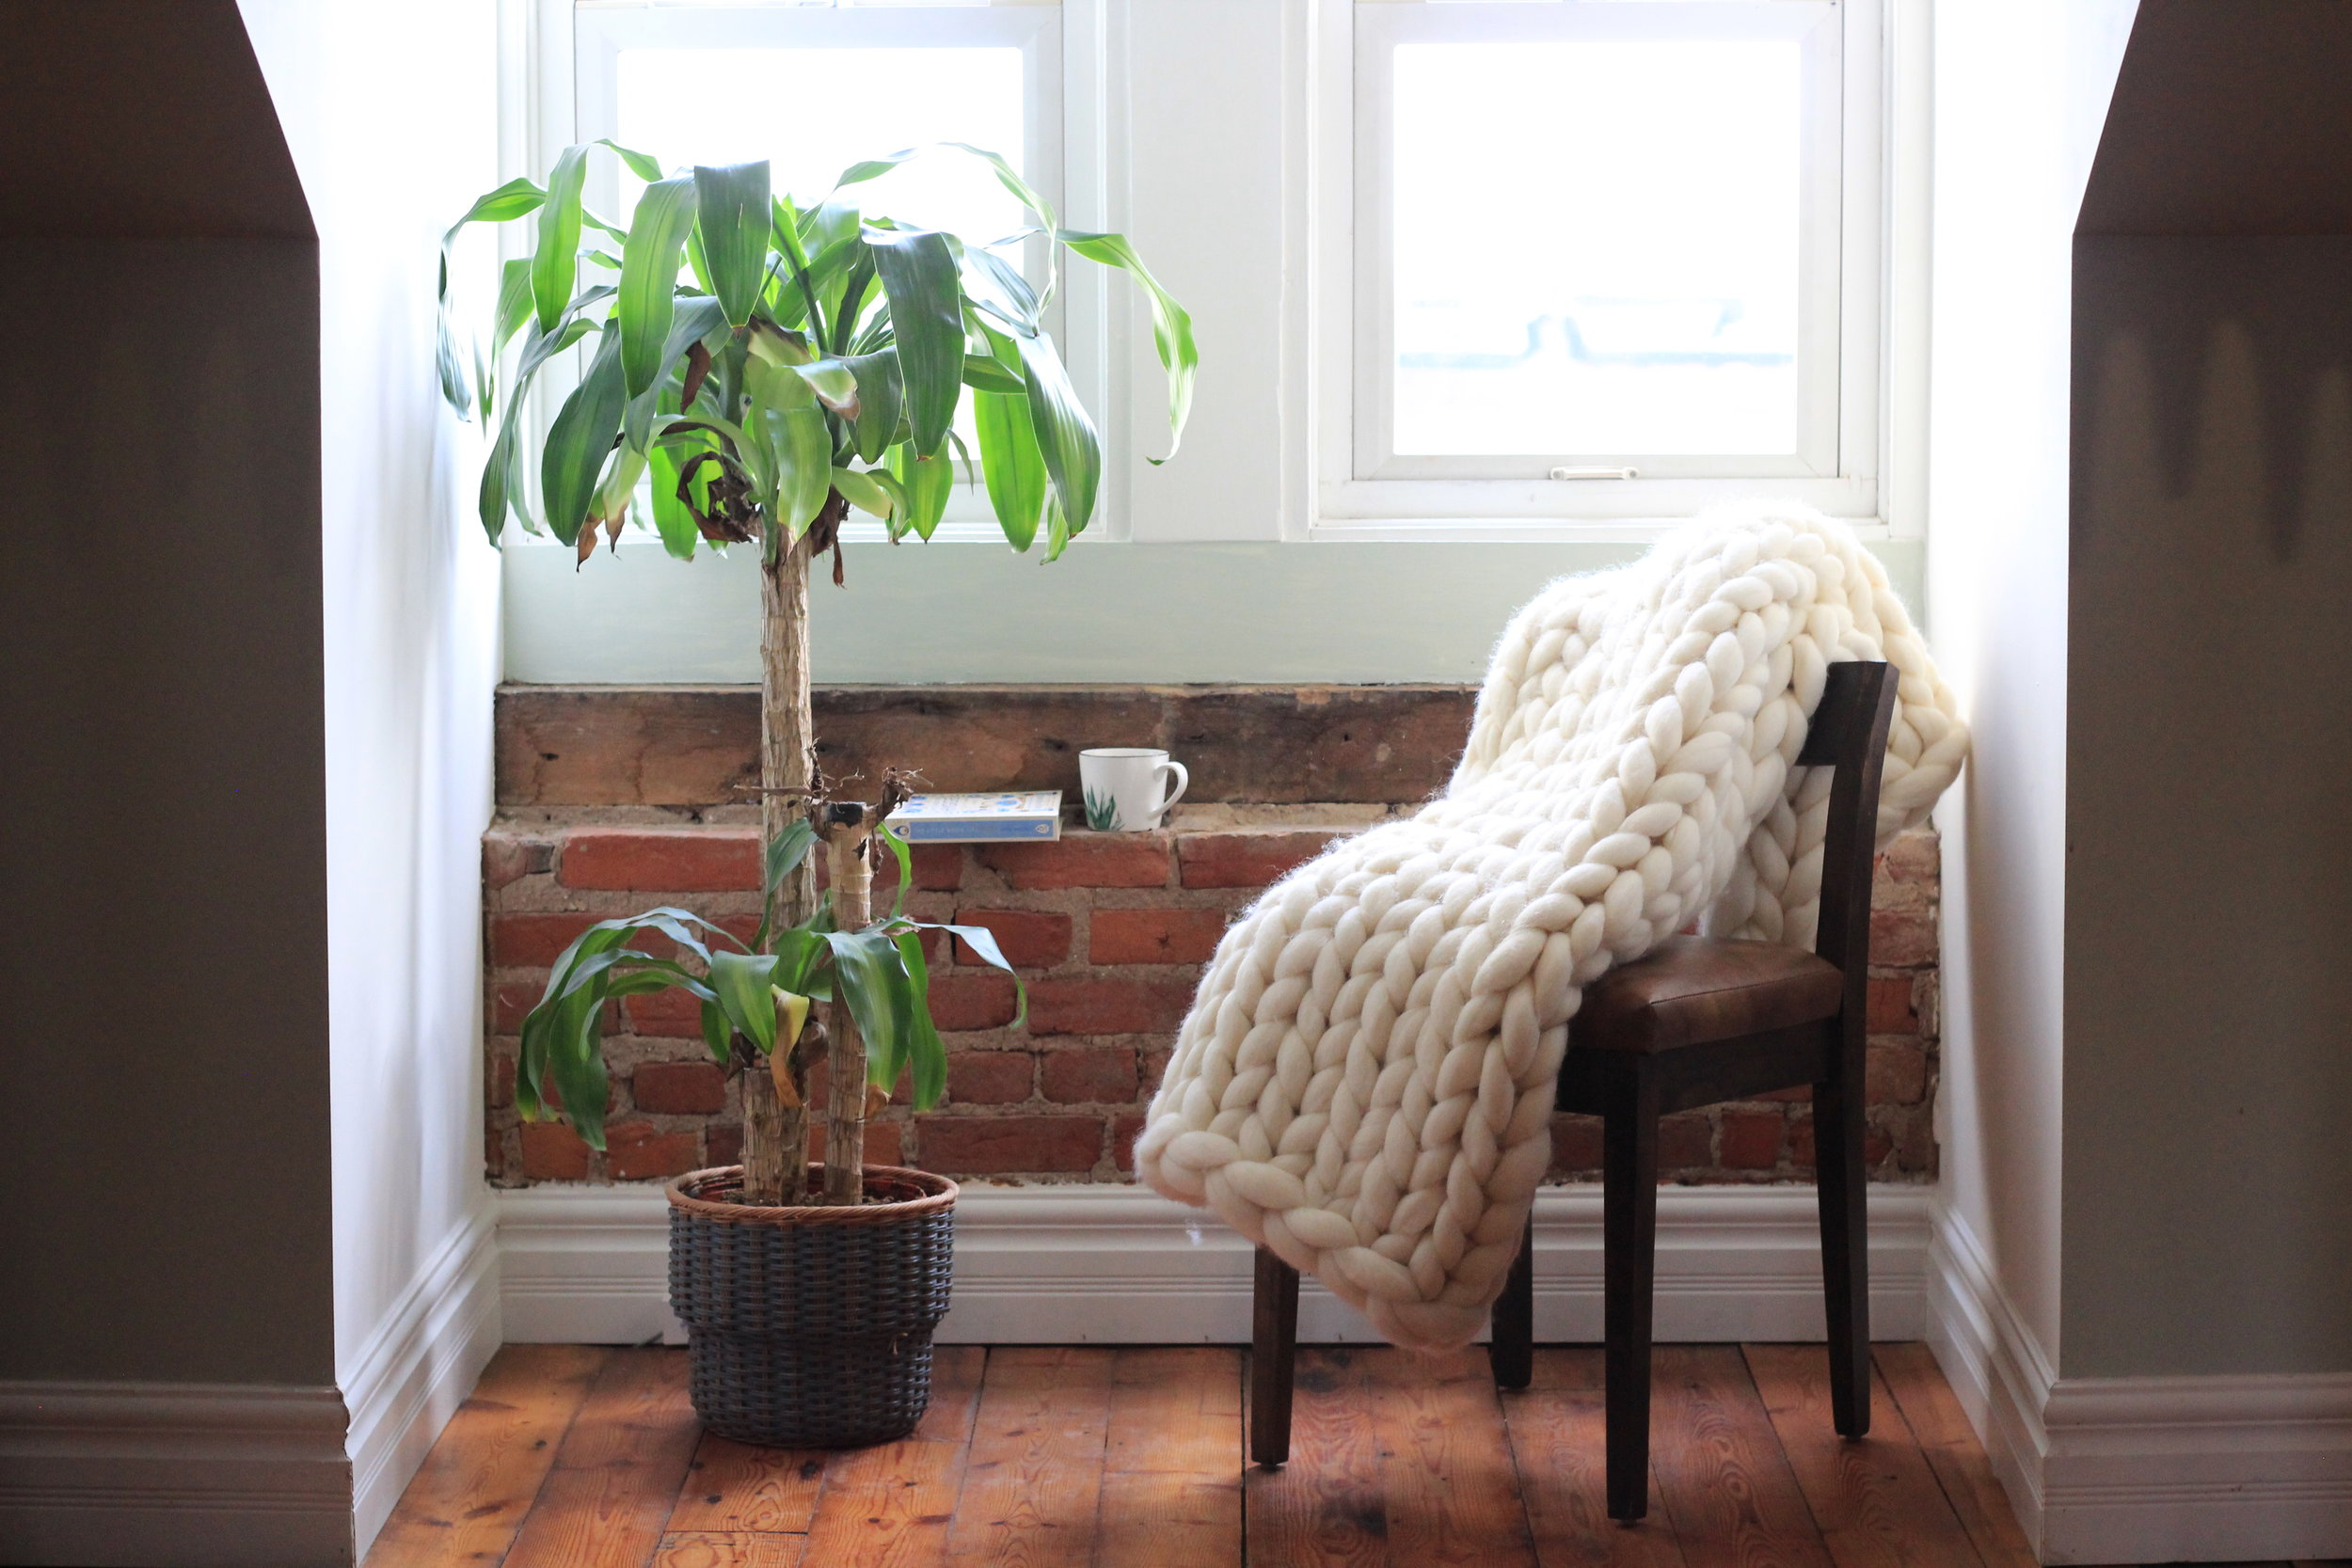 A throw on a chair is the perfect addition to your Hyggekrog - a cozy, Hygge-filled corner in your home. It is also a sure-fire way to draw the eye's attention.